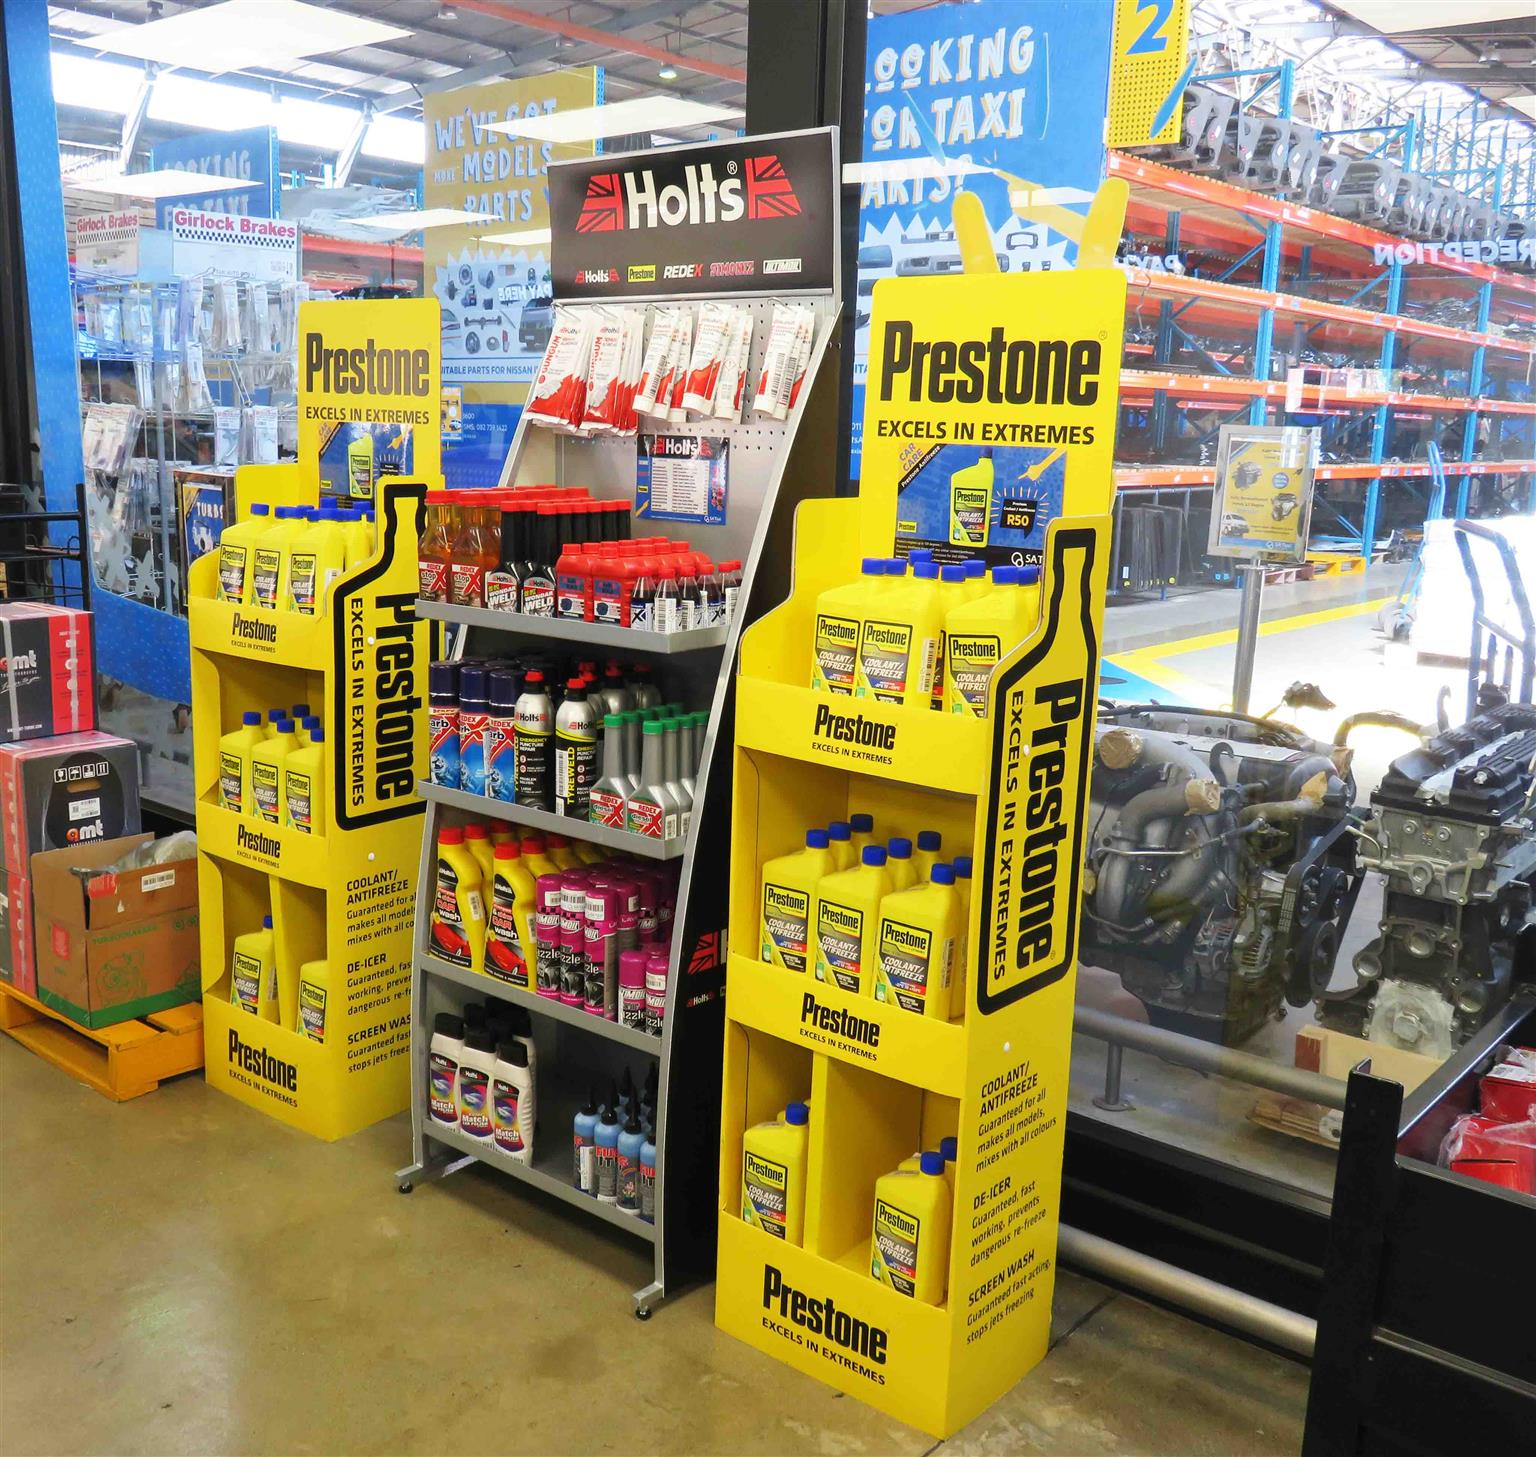 Buy your 1L Prestone Coolant / Antifreeze at SA Taxi Auto Parts - quality taxi spares